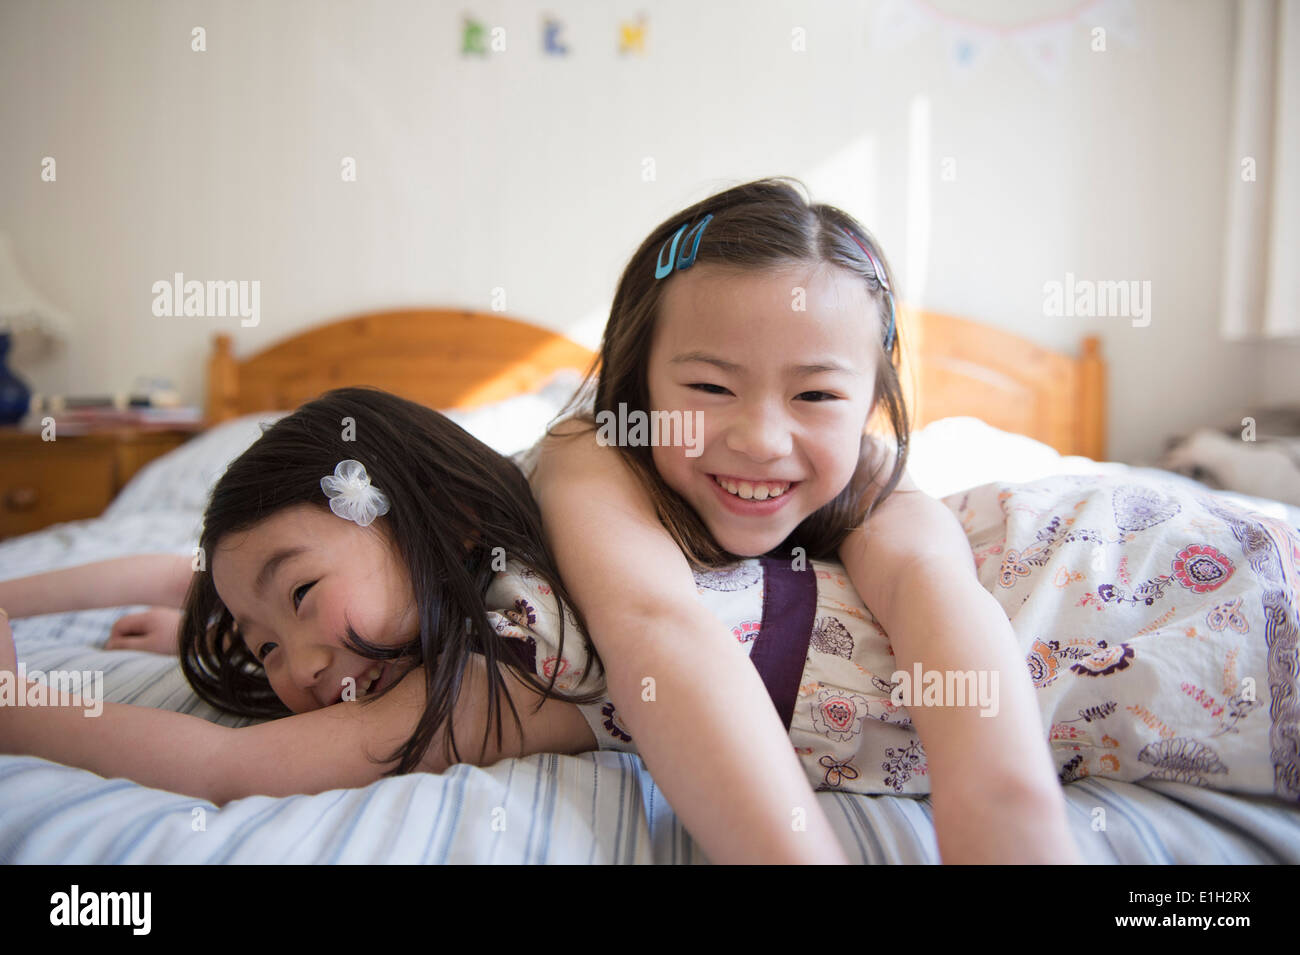 Deux jeunes amies lying on bed Photo Stock